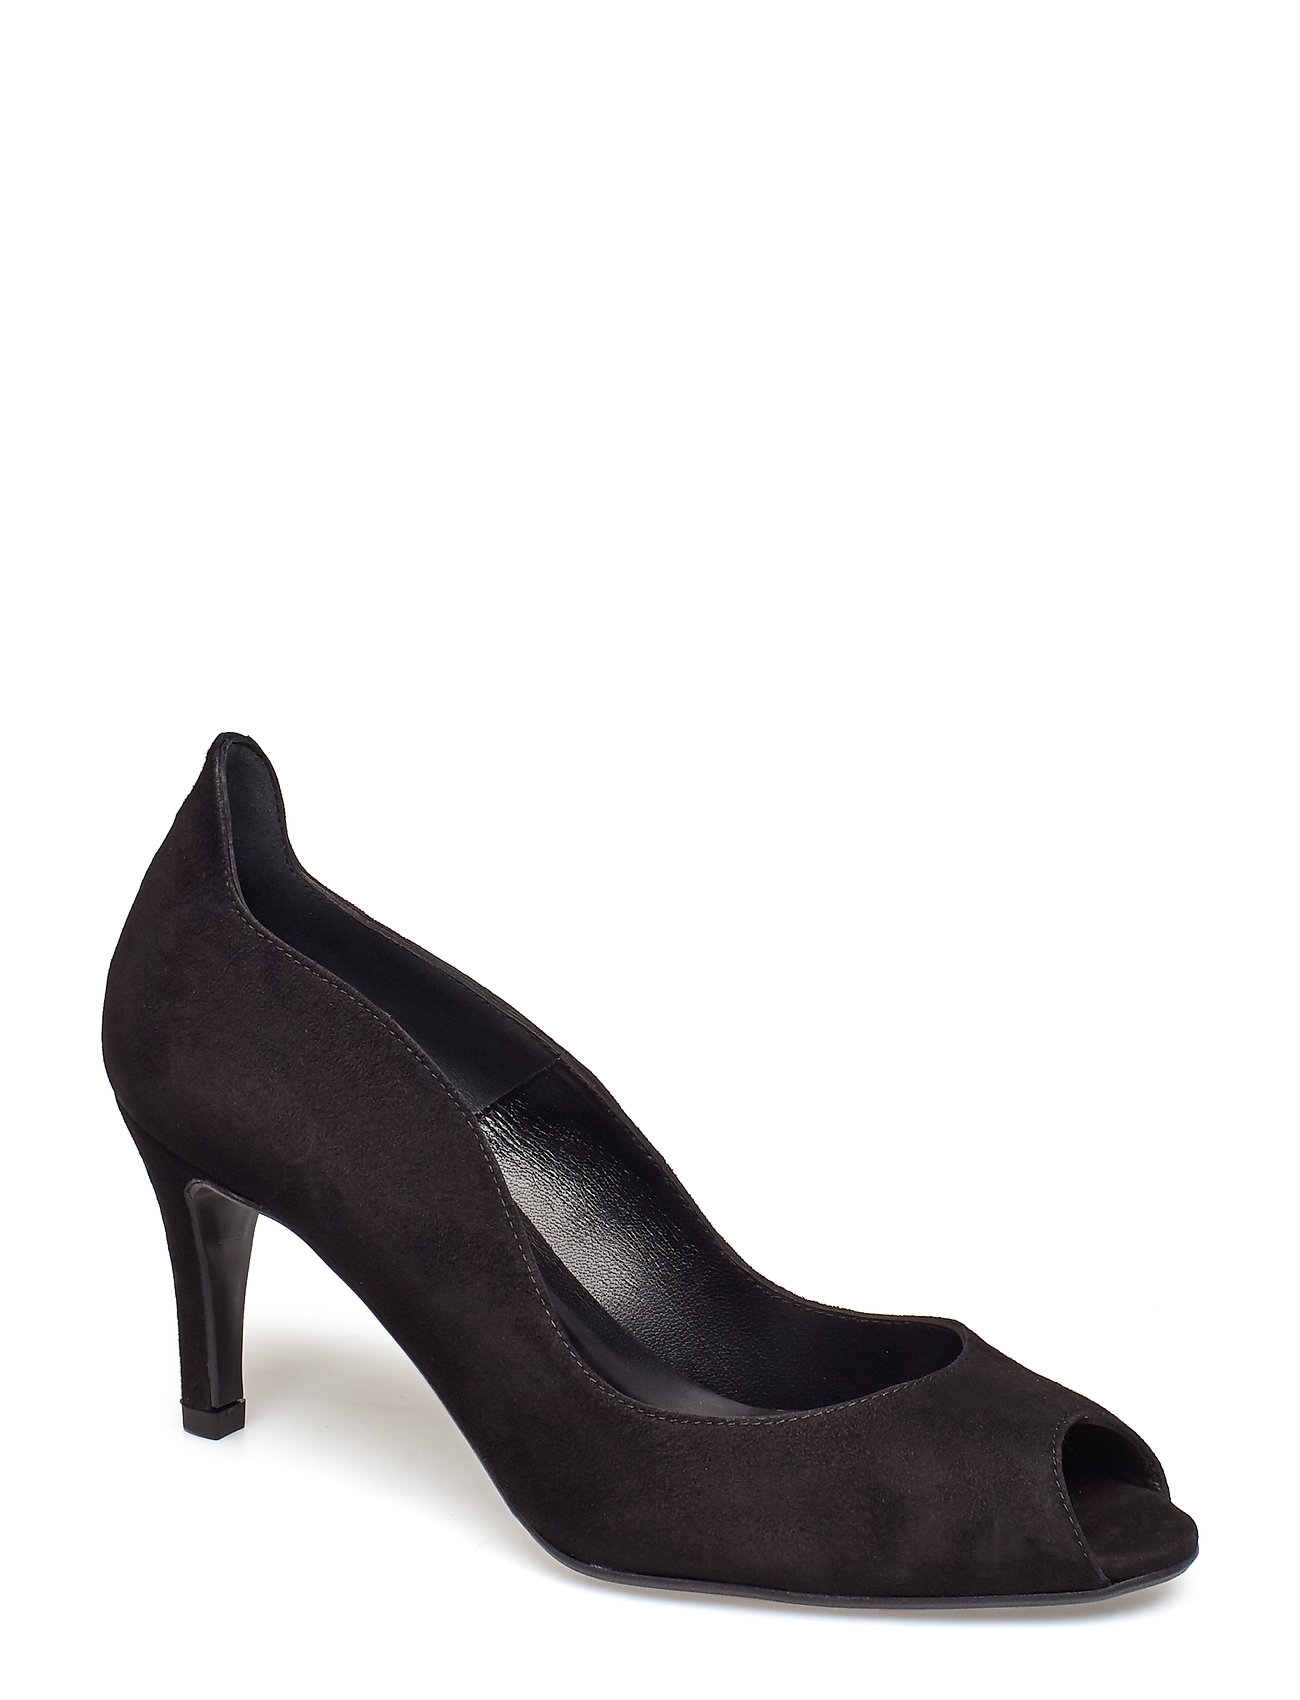 Billi Bi PUMPS 8080 - BLACK SUEDE 50